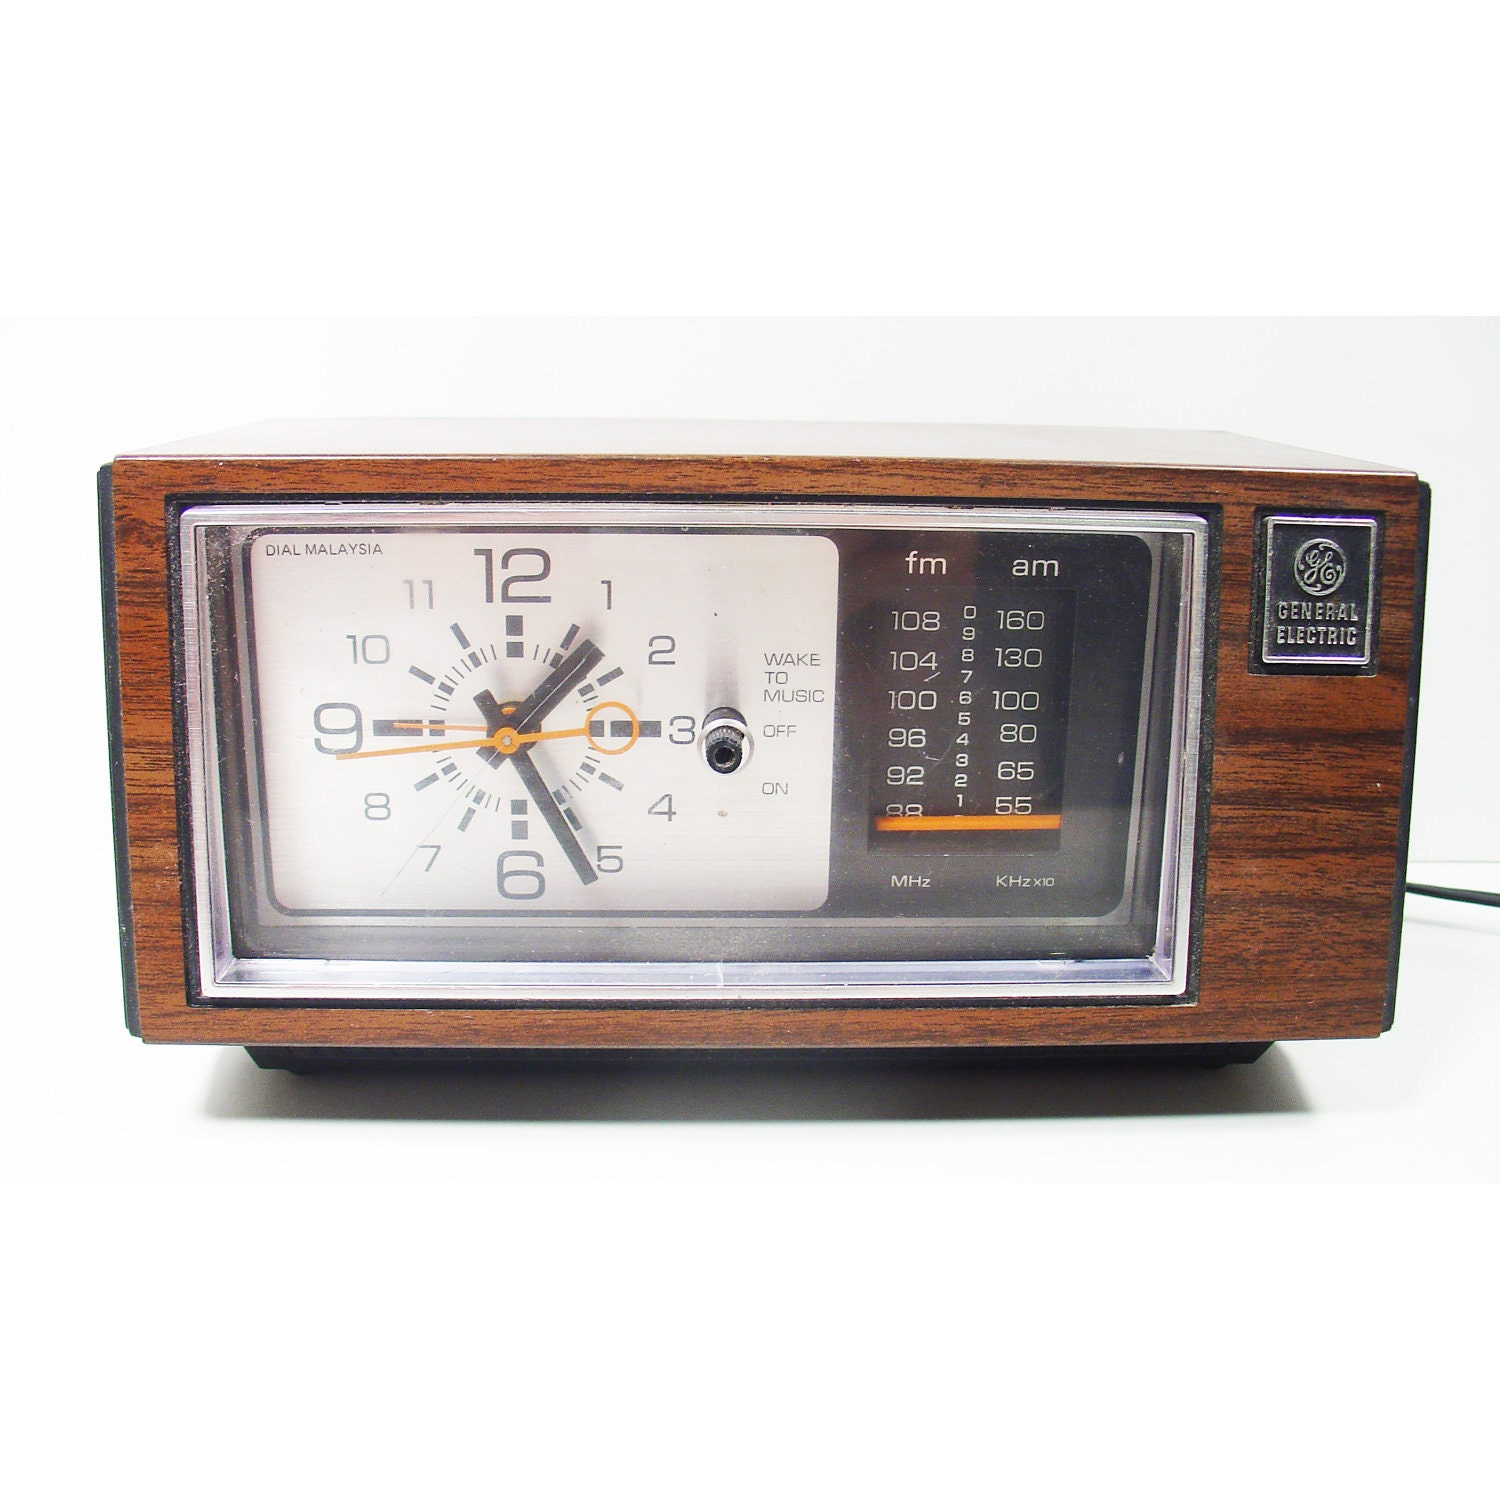 am fm alarm clock radio classic retro general electric model. Black Bedroom Furniture Sets. Home Design Ideas